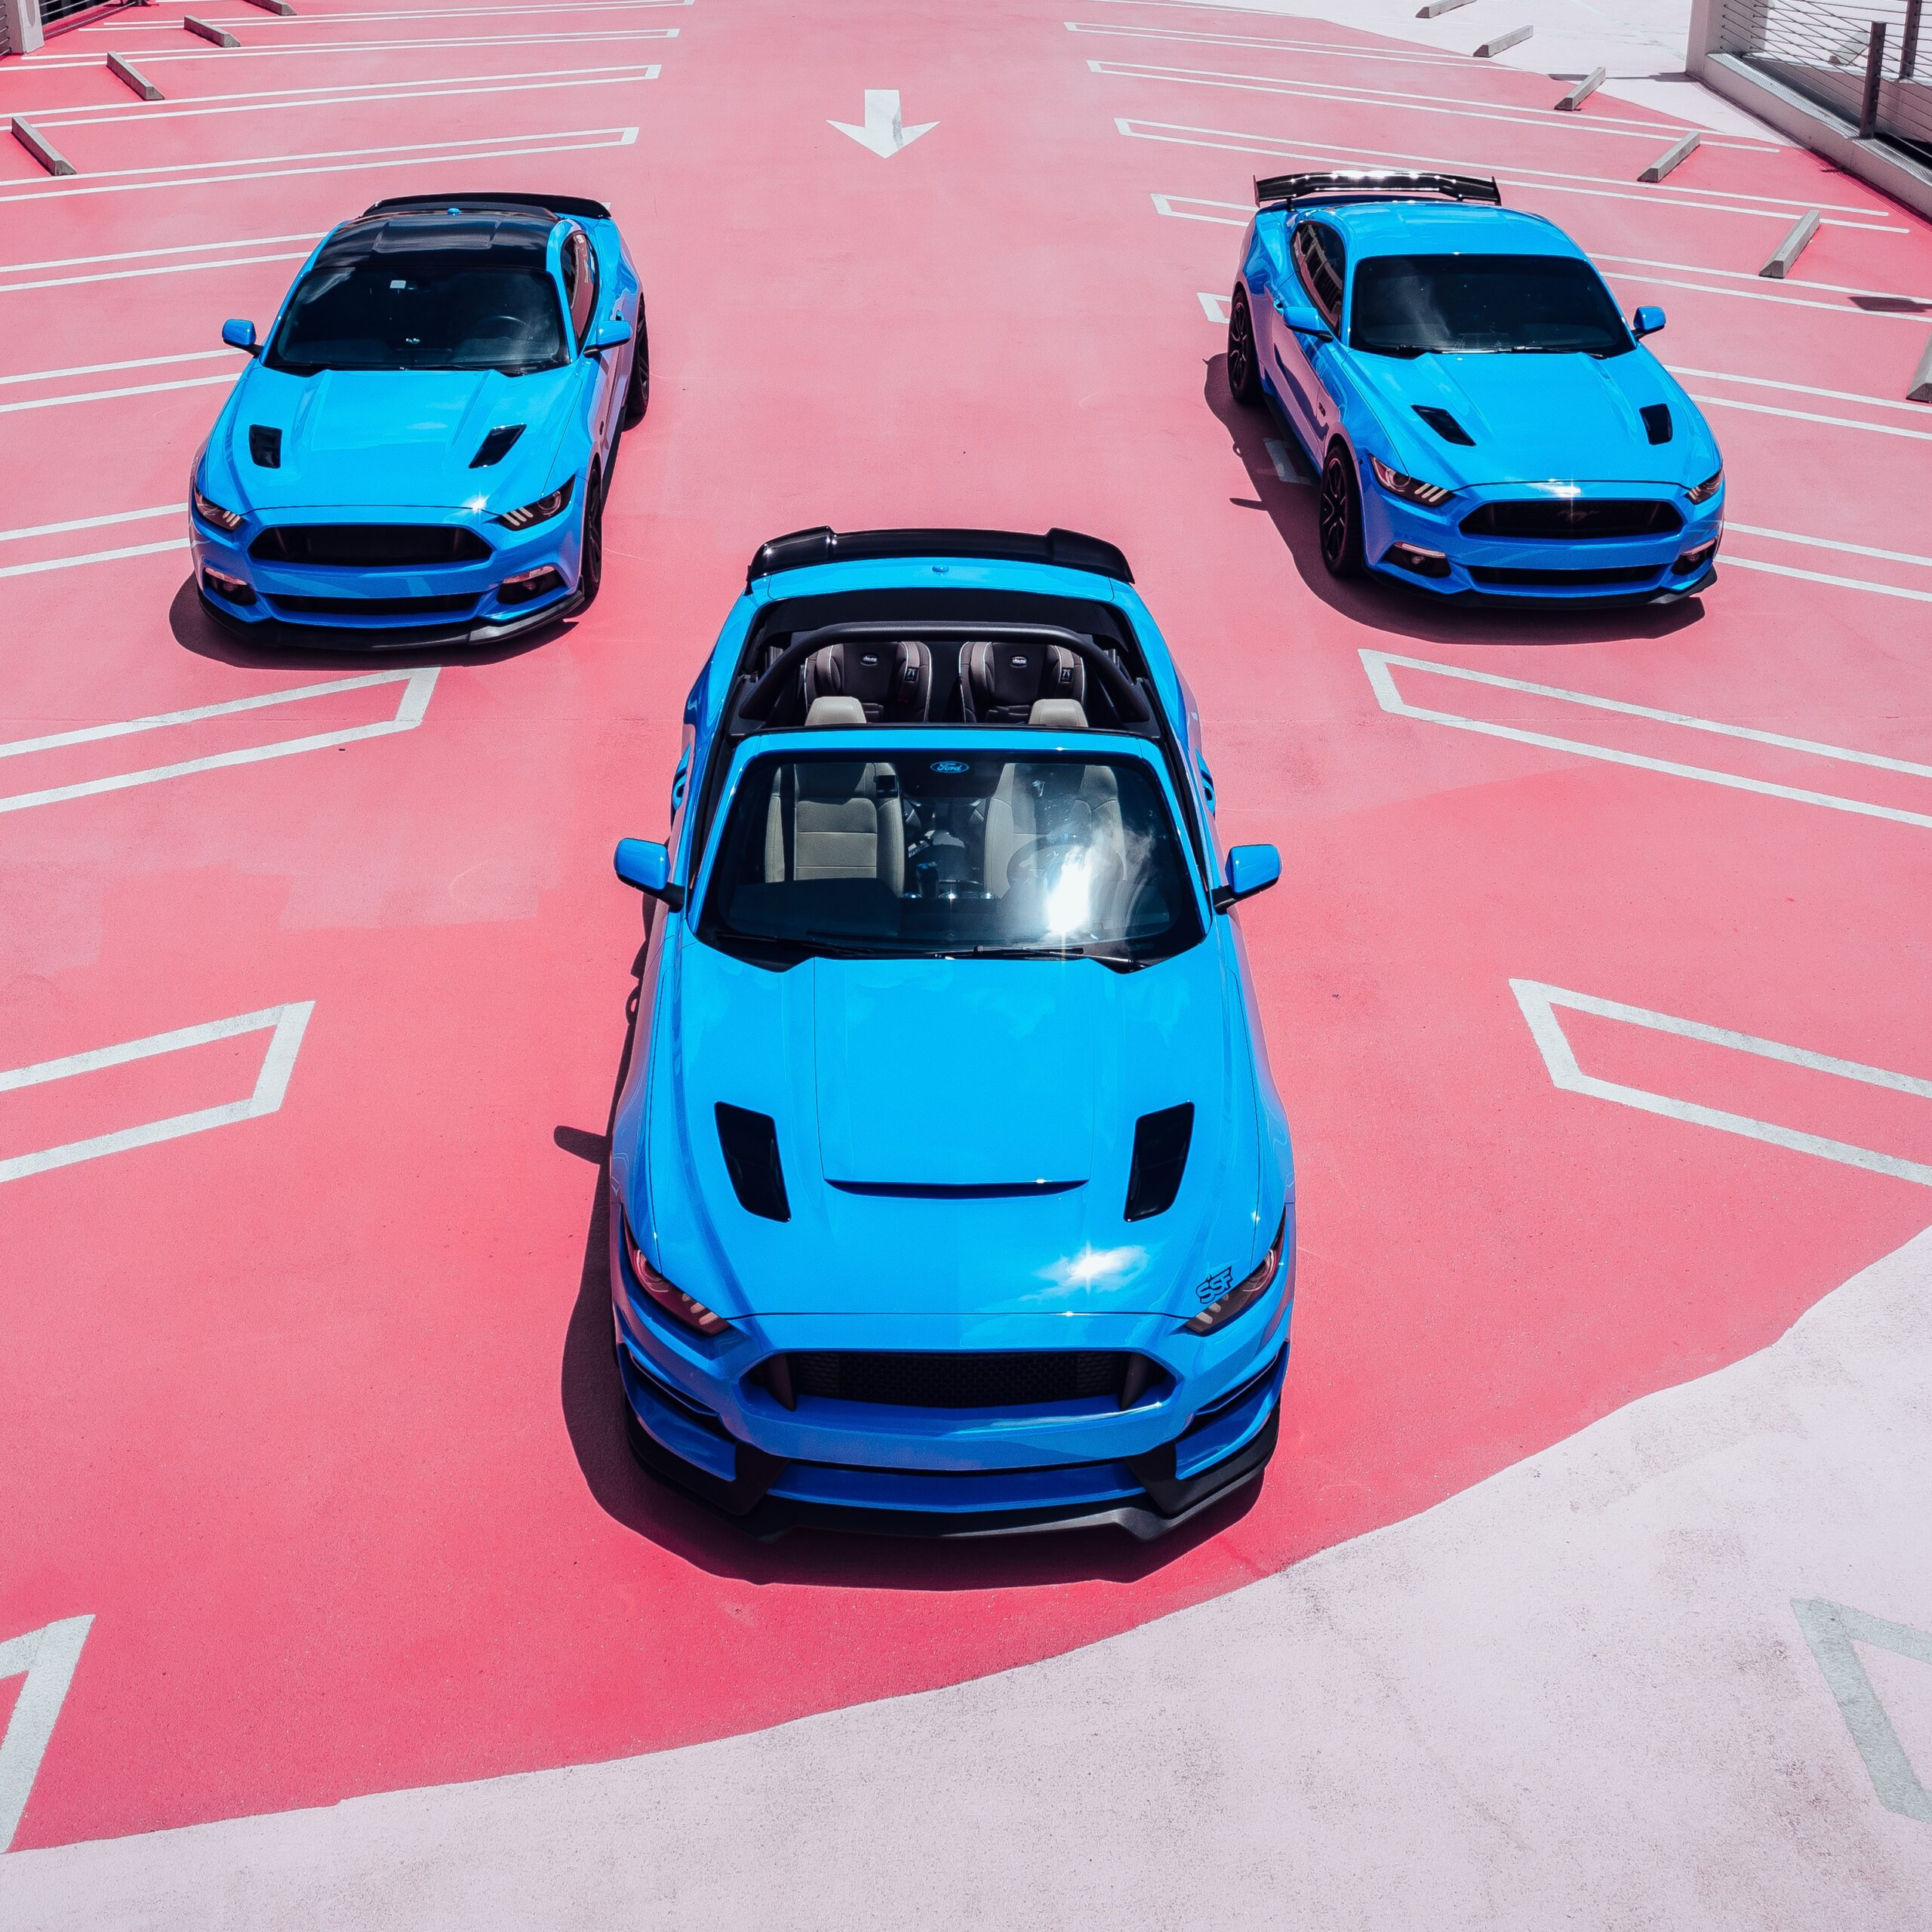 3 cars to lease on the lot